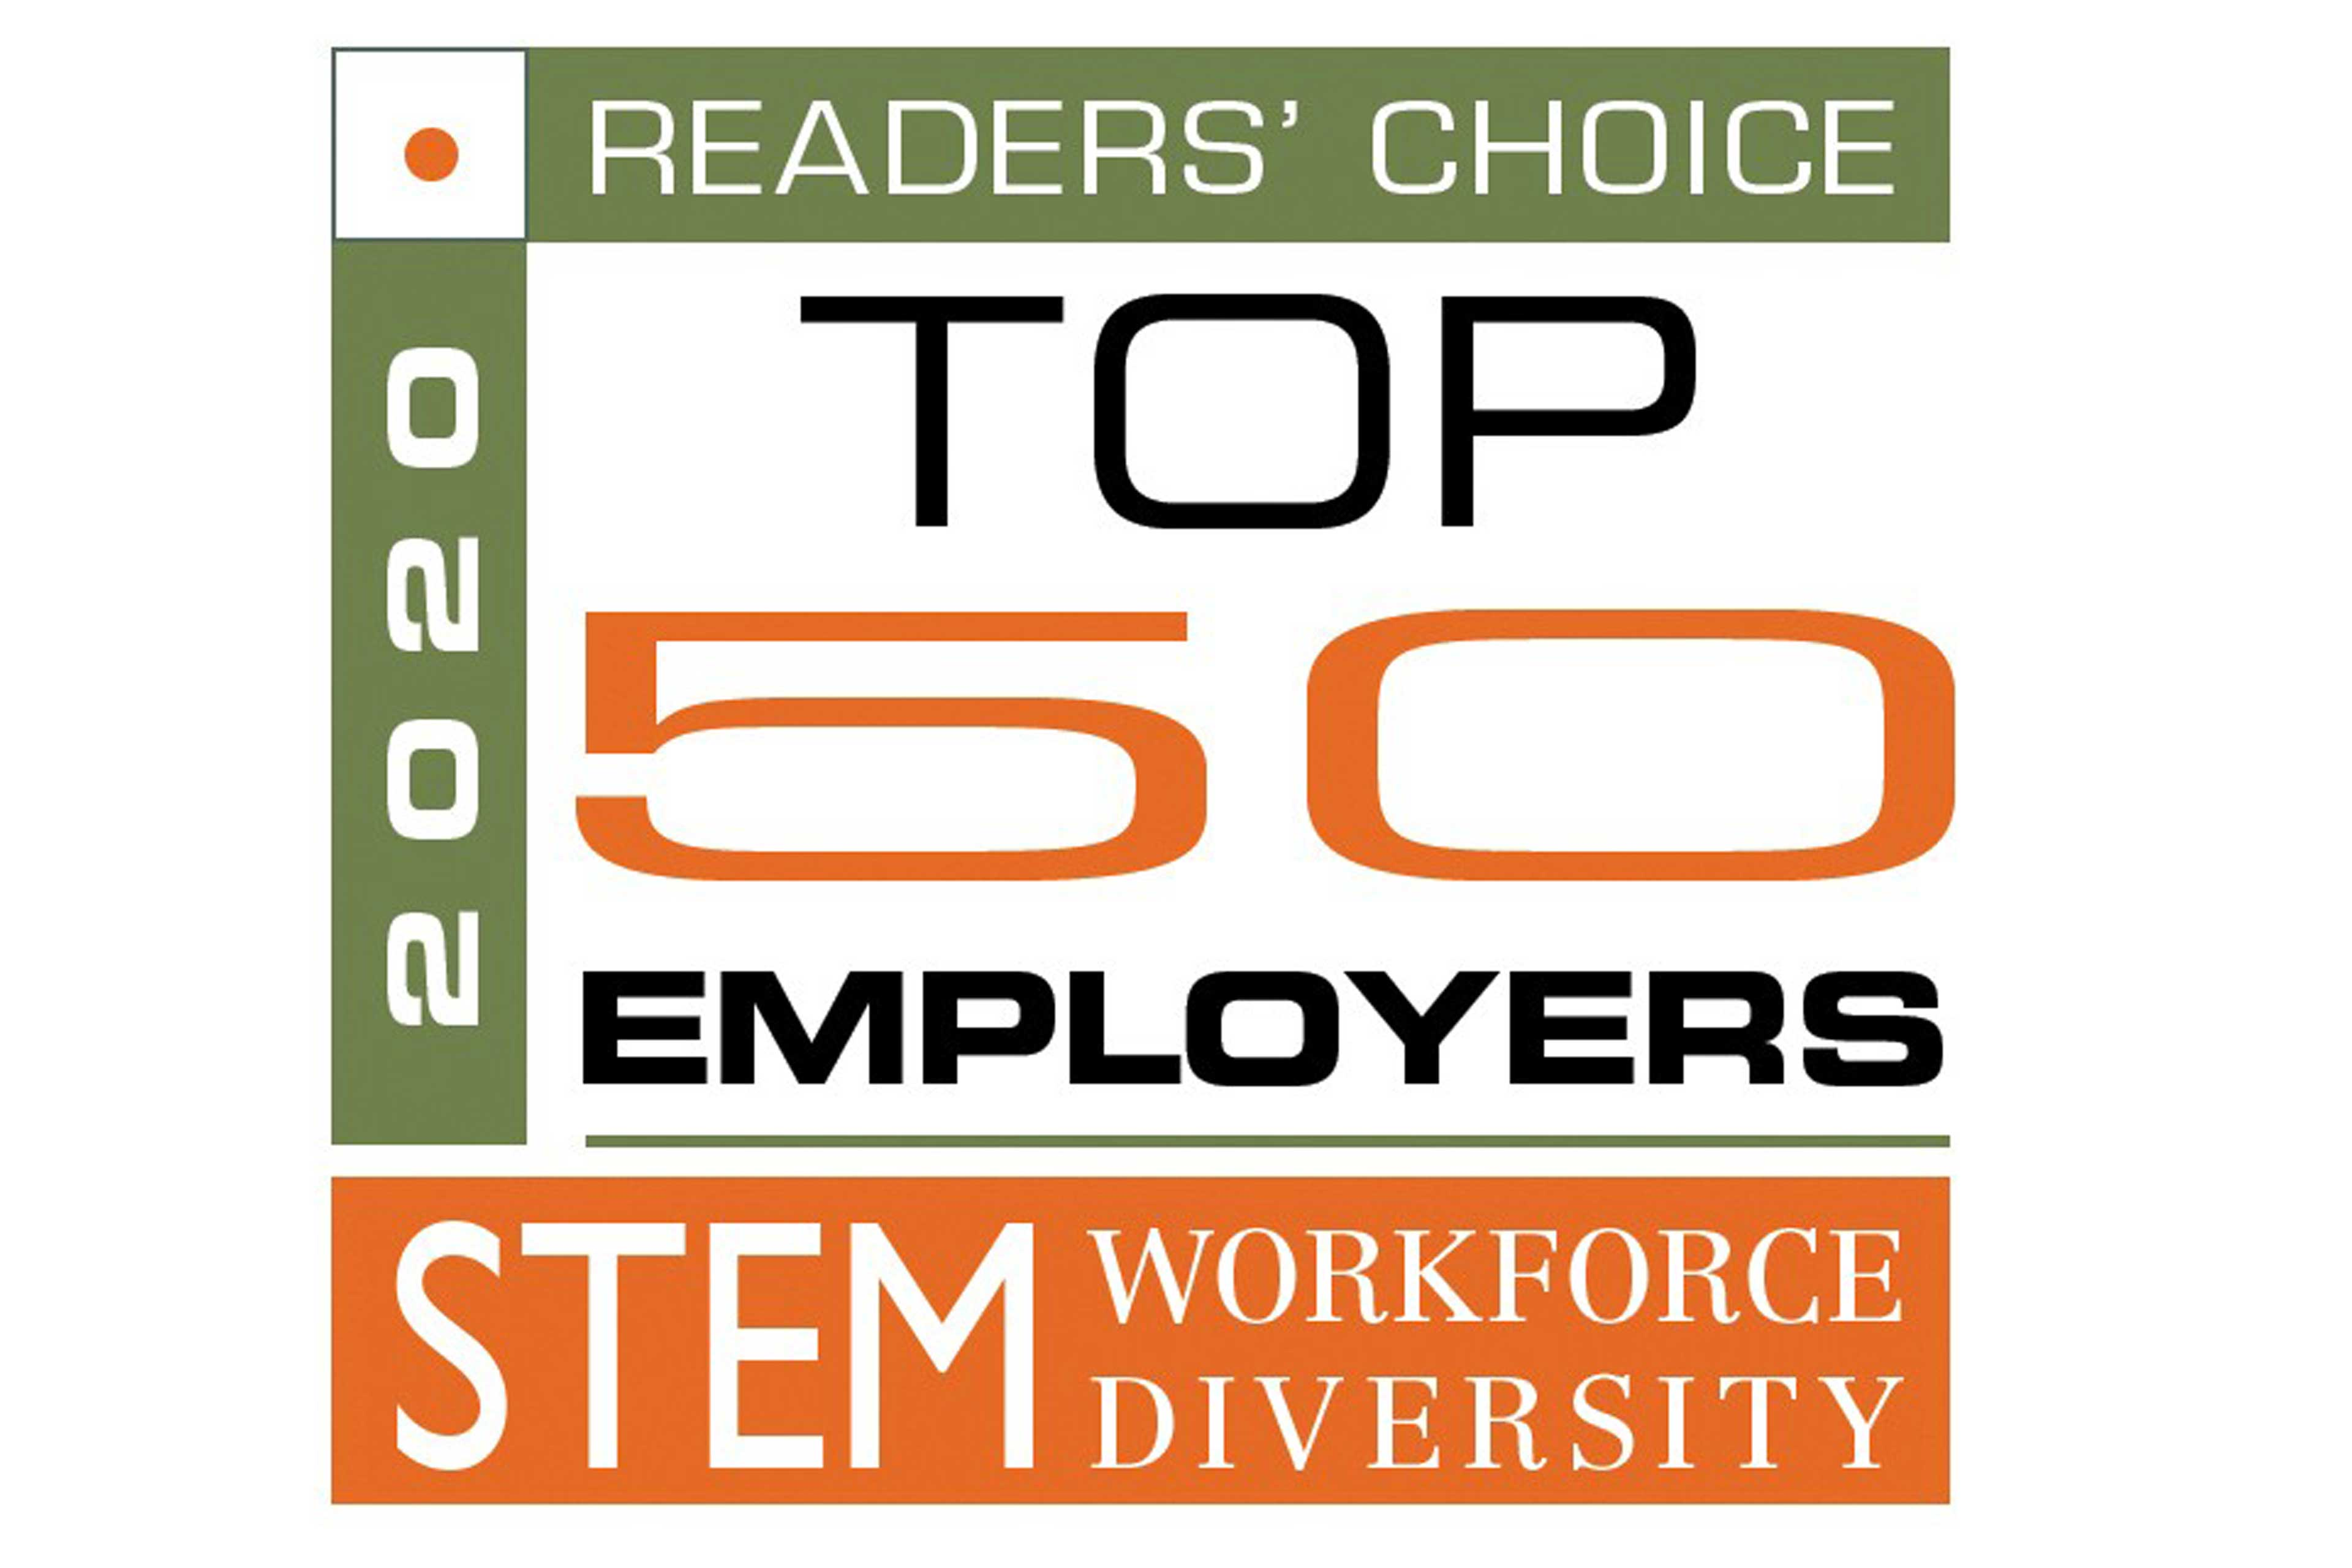 STEM Workforce Diversity 2020 Readers' Choice Top 50 Employers